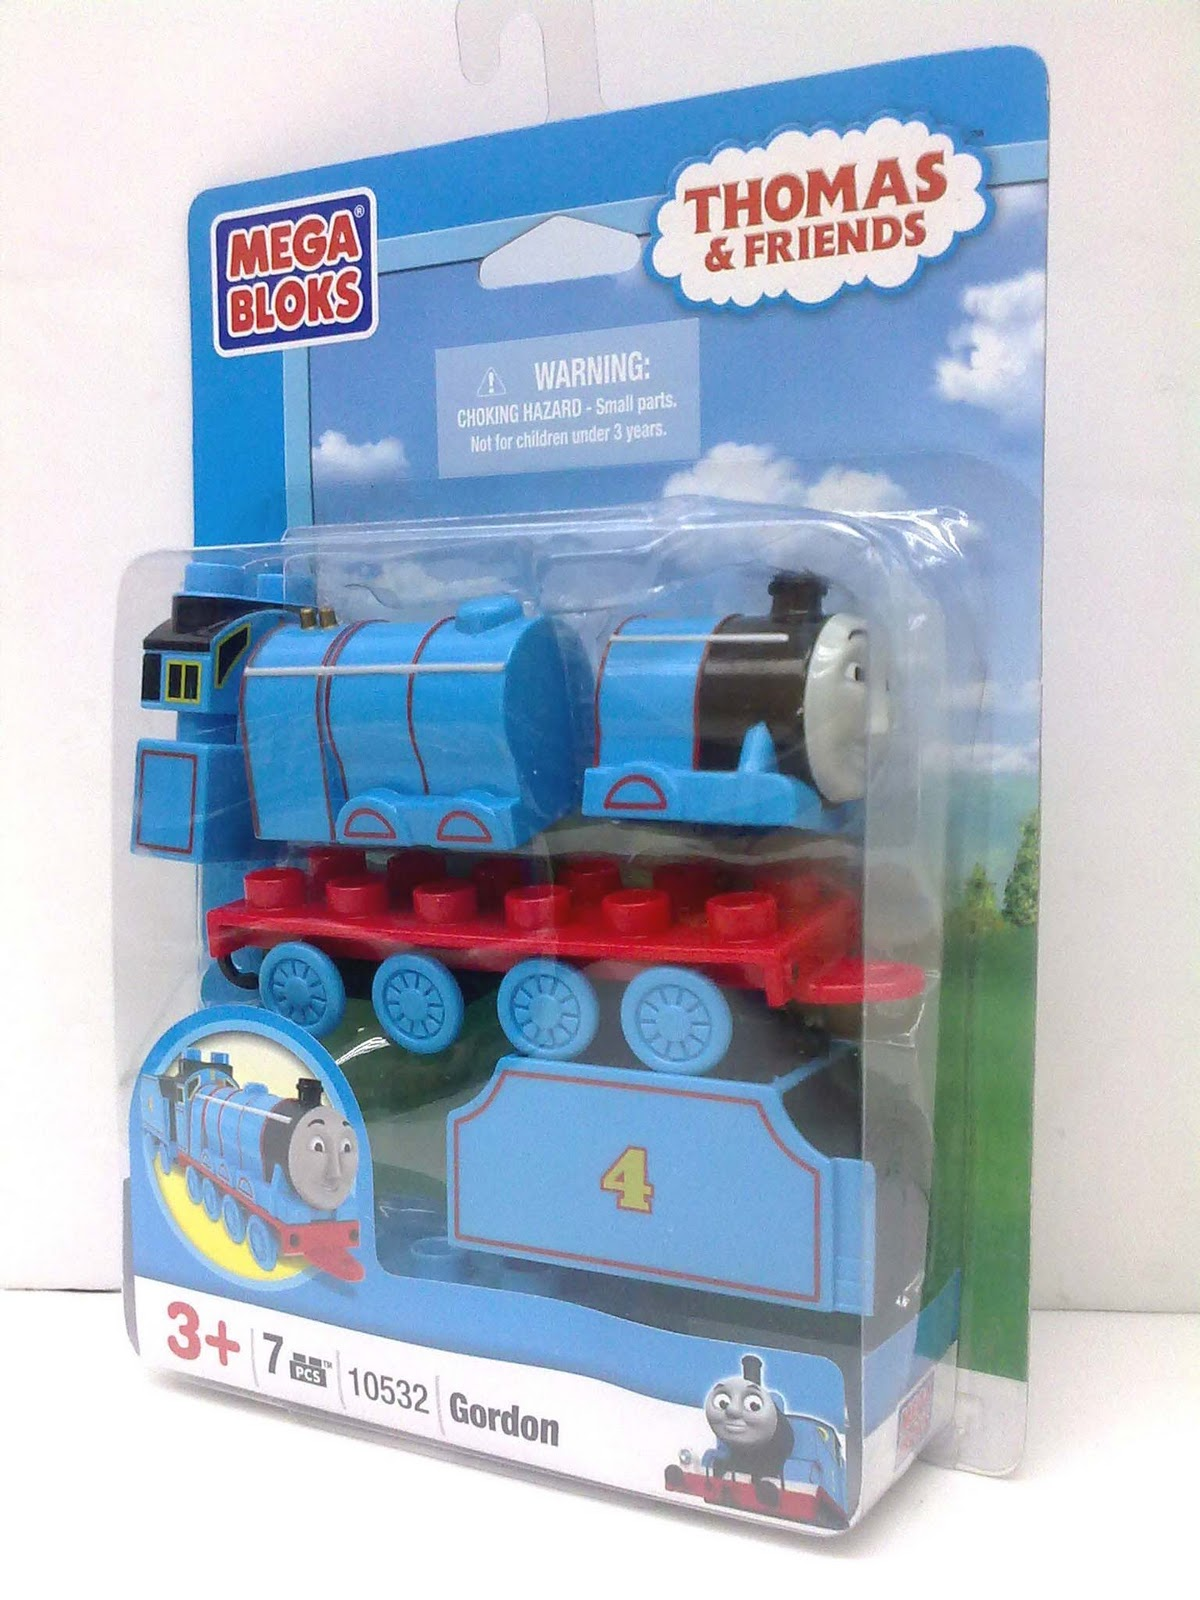 Brickstoy: Mega Bloks Thomas & Friends Train Sets New Arrival